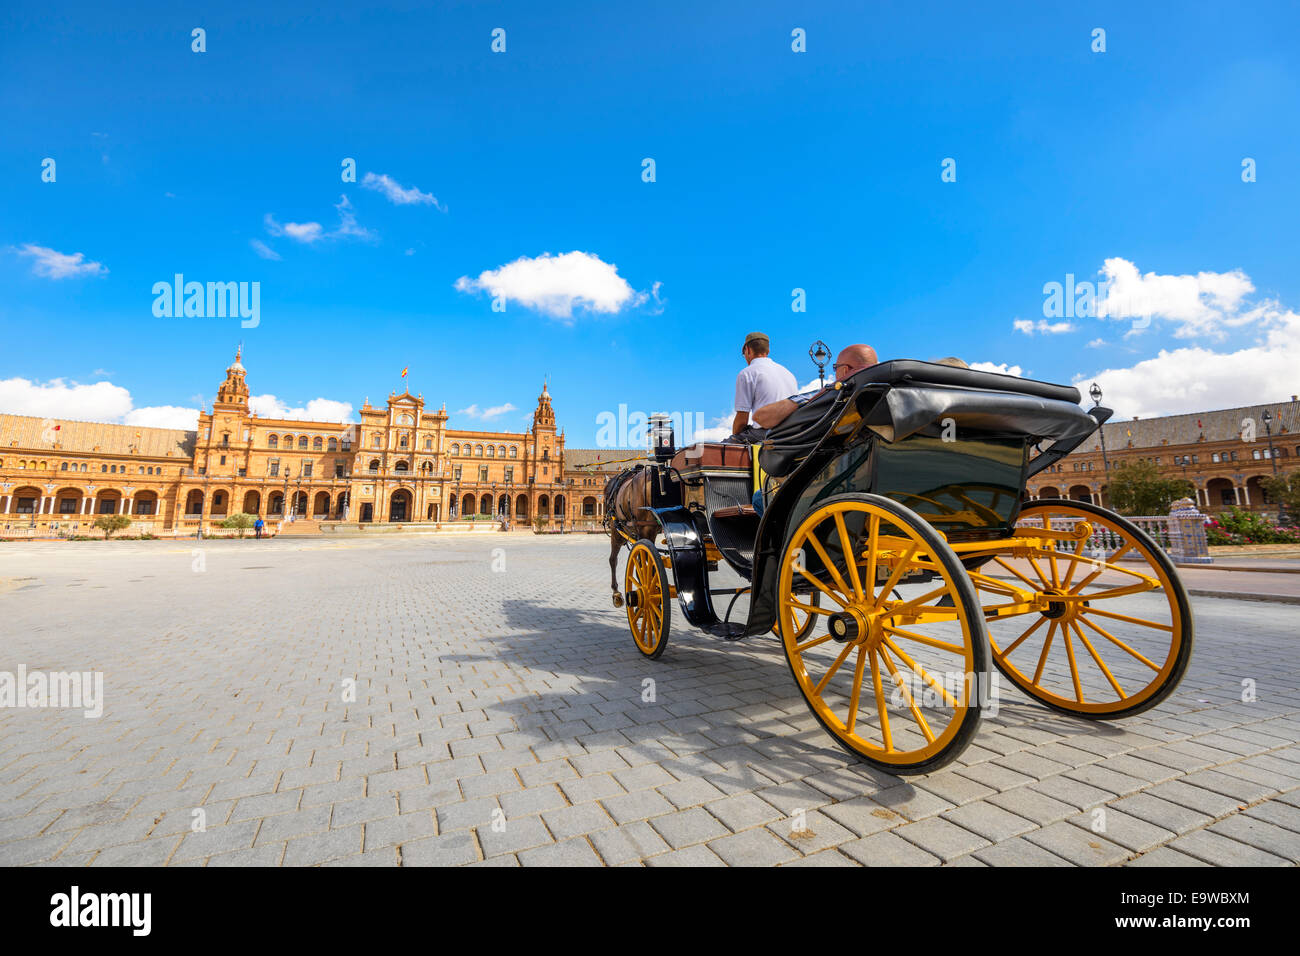 Seville, Spain. A horse drawn carriage tour through Spanish Square. - Stock Image